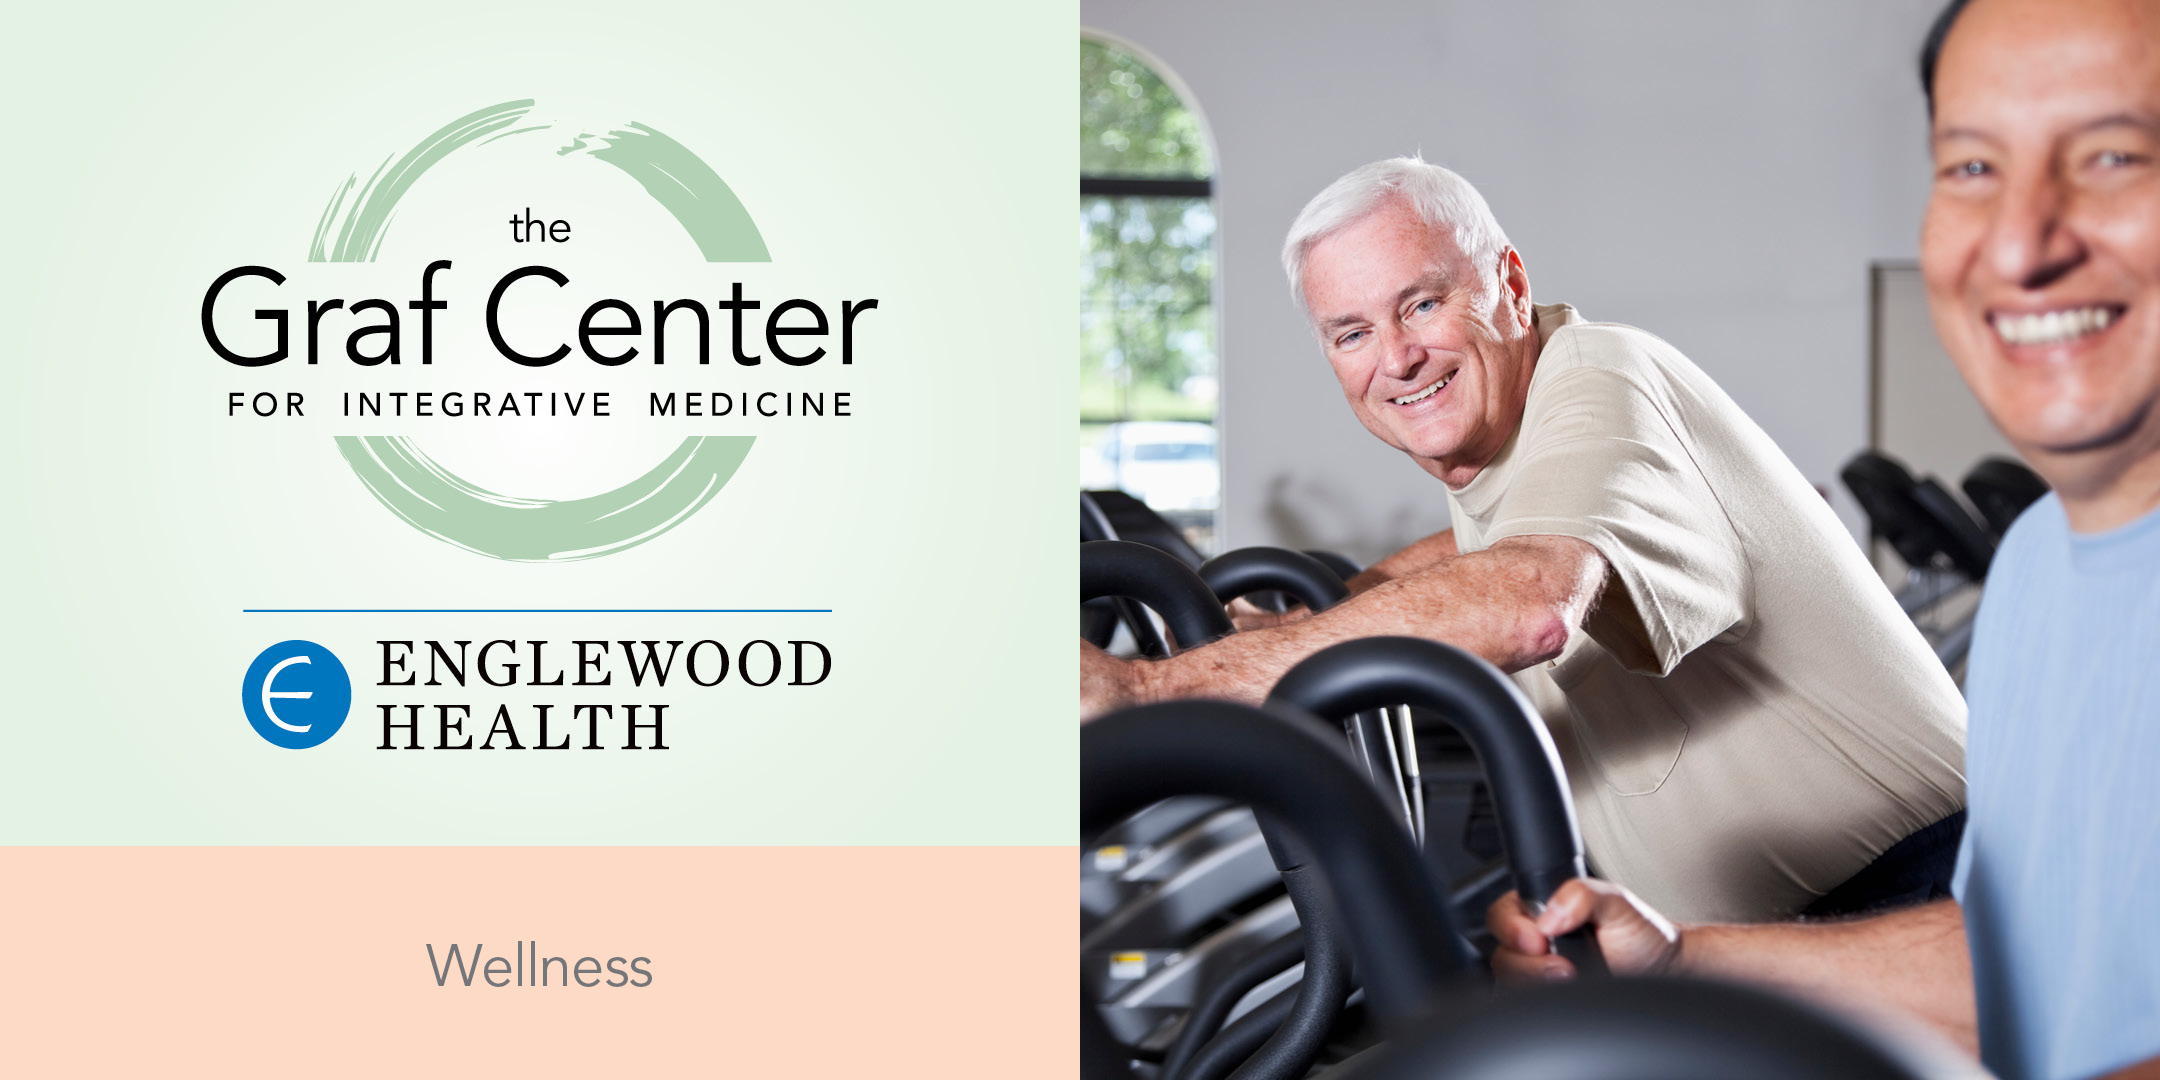 Wellness and Longevity: Heart Health Program